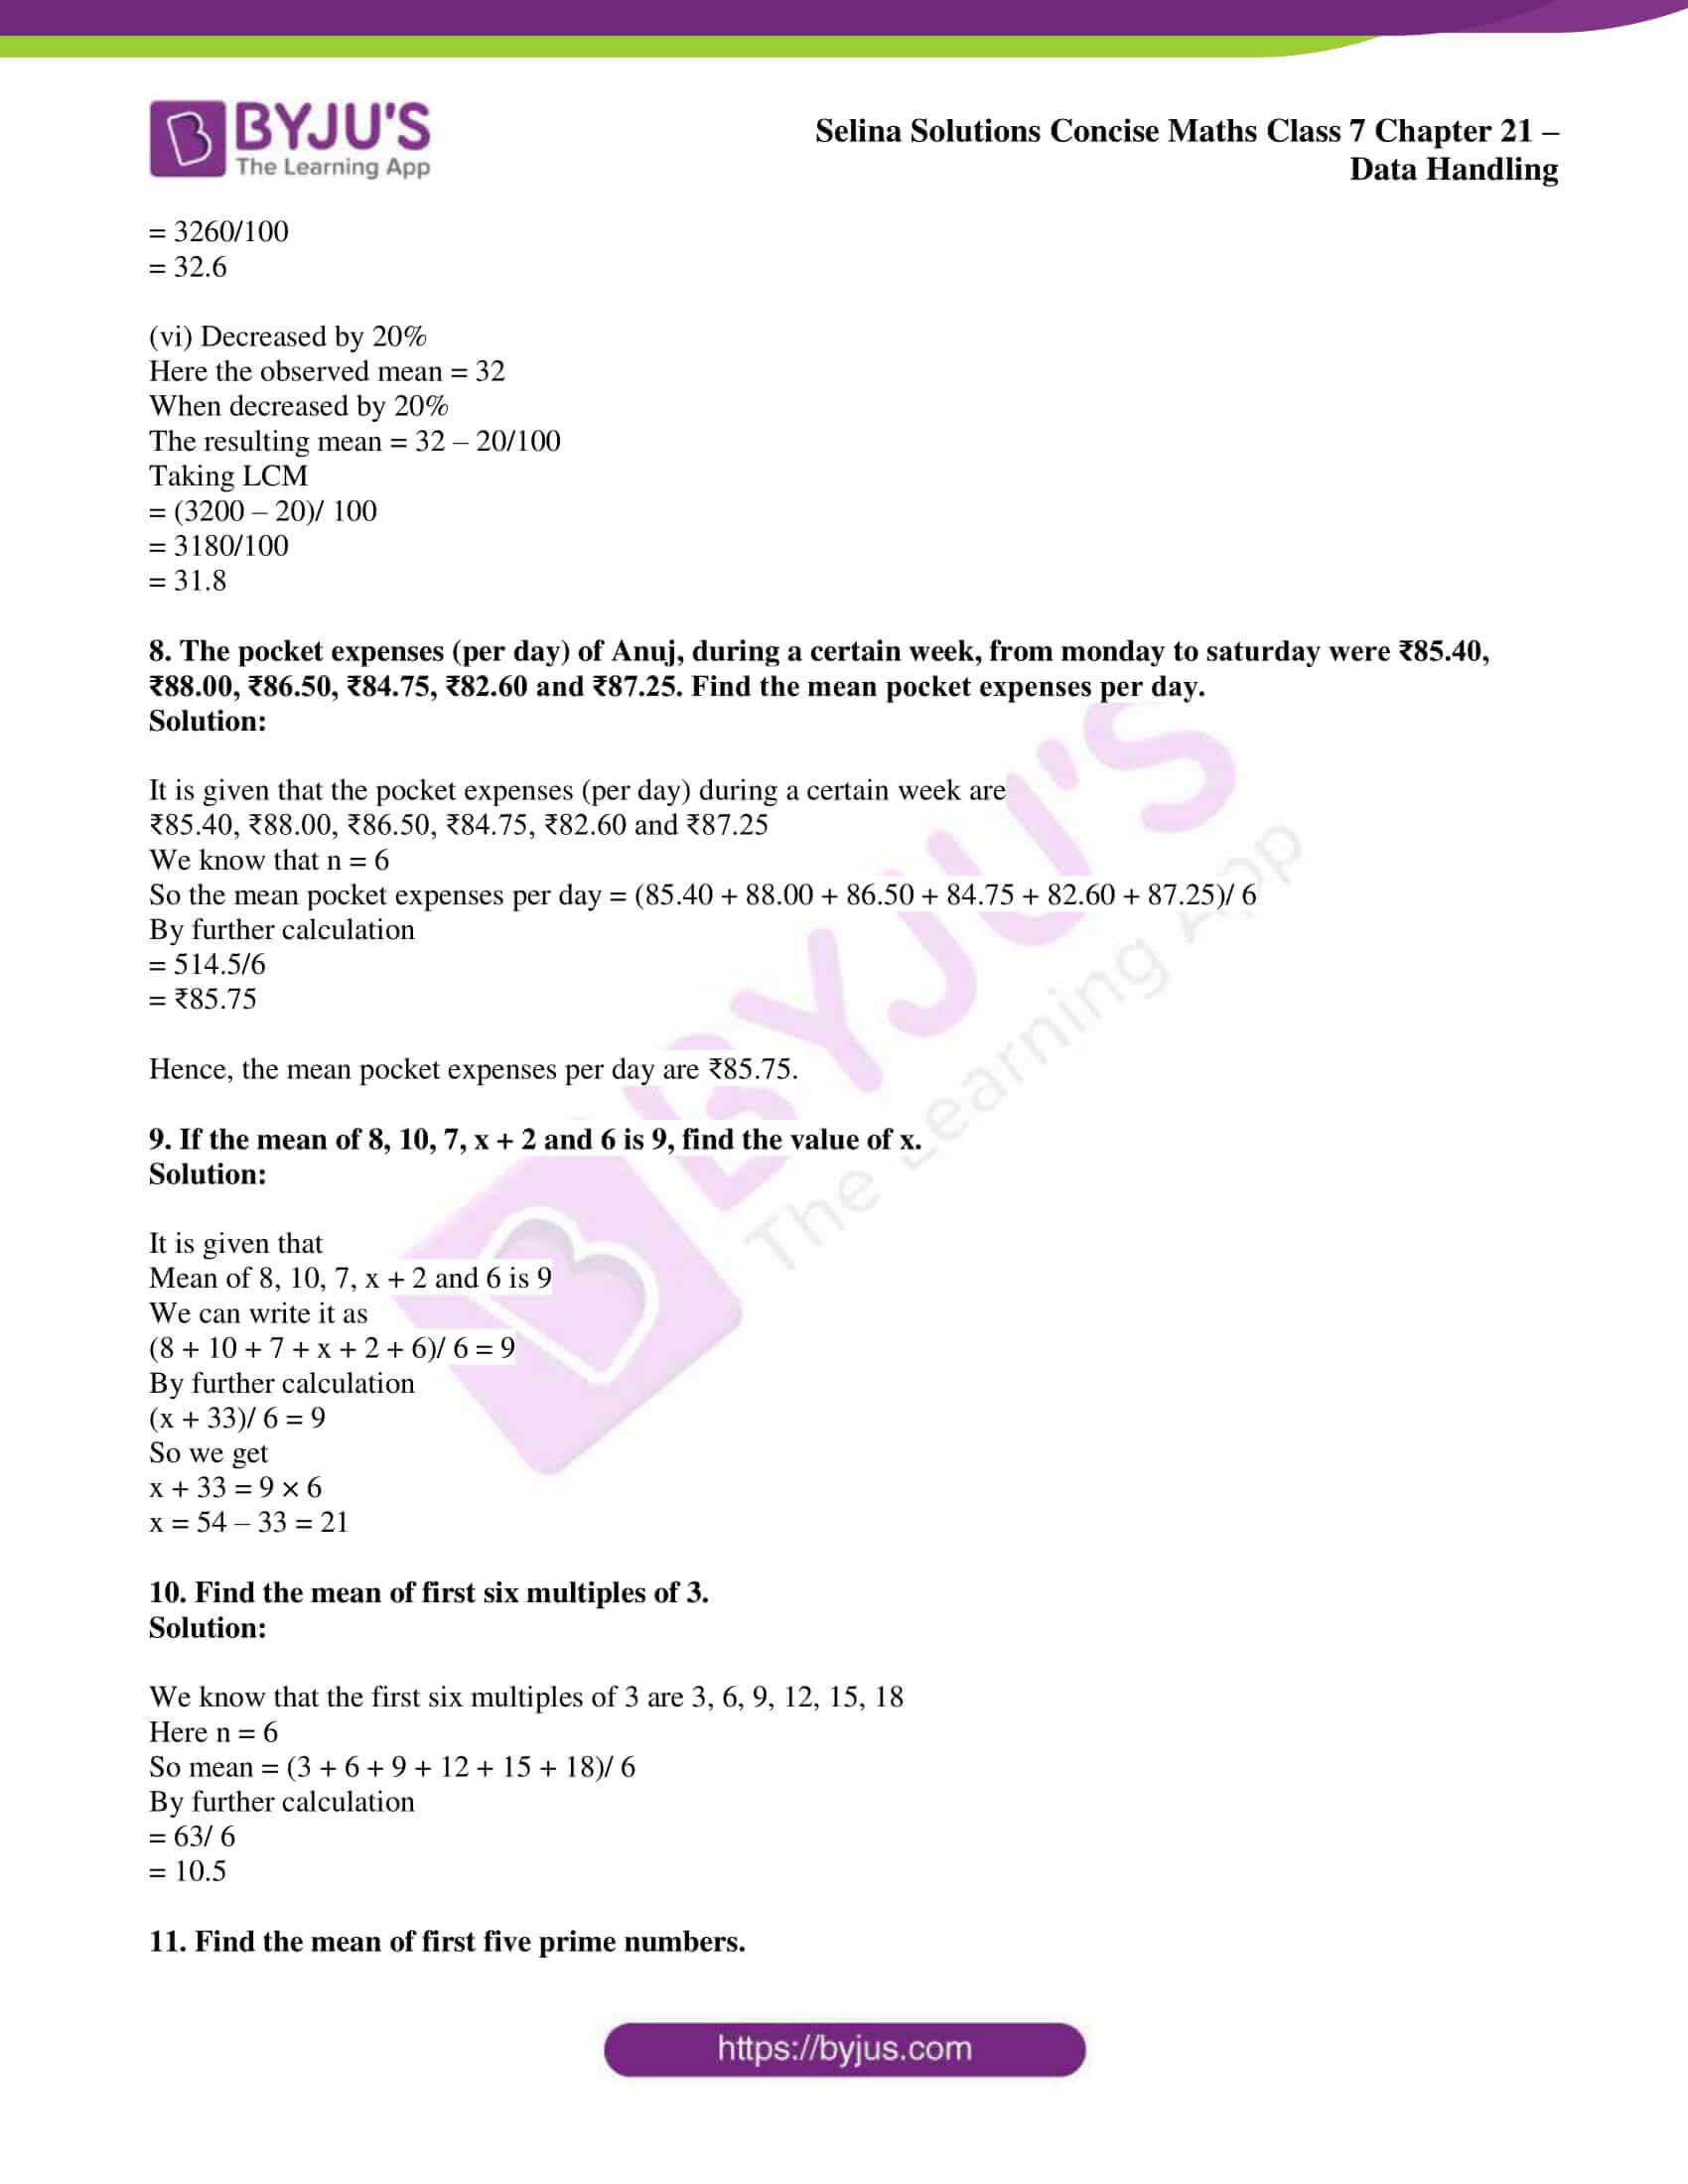 selina sol concise maths class 7 chapter 21 ex b 3